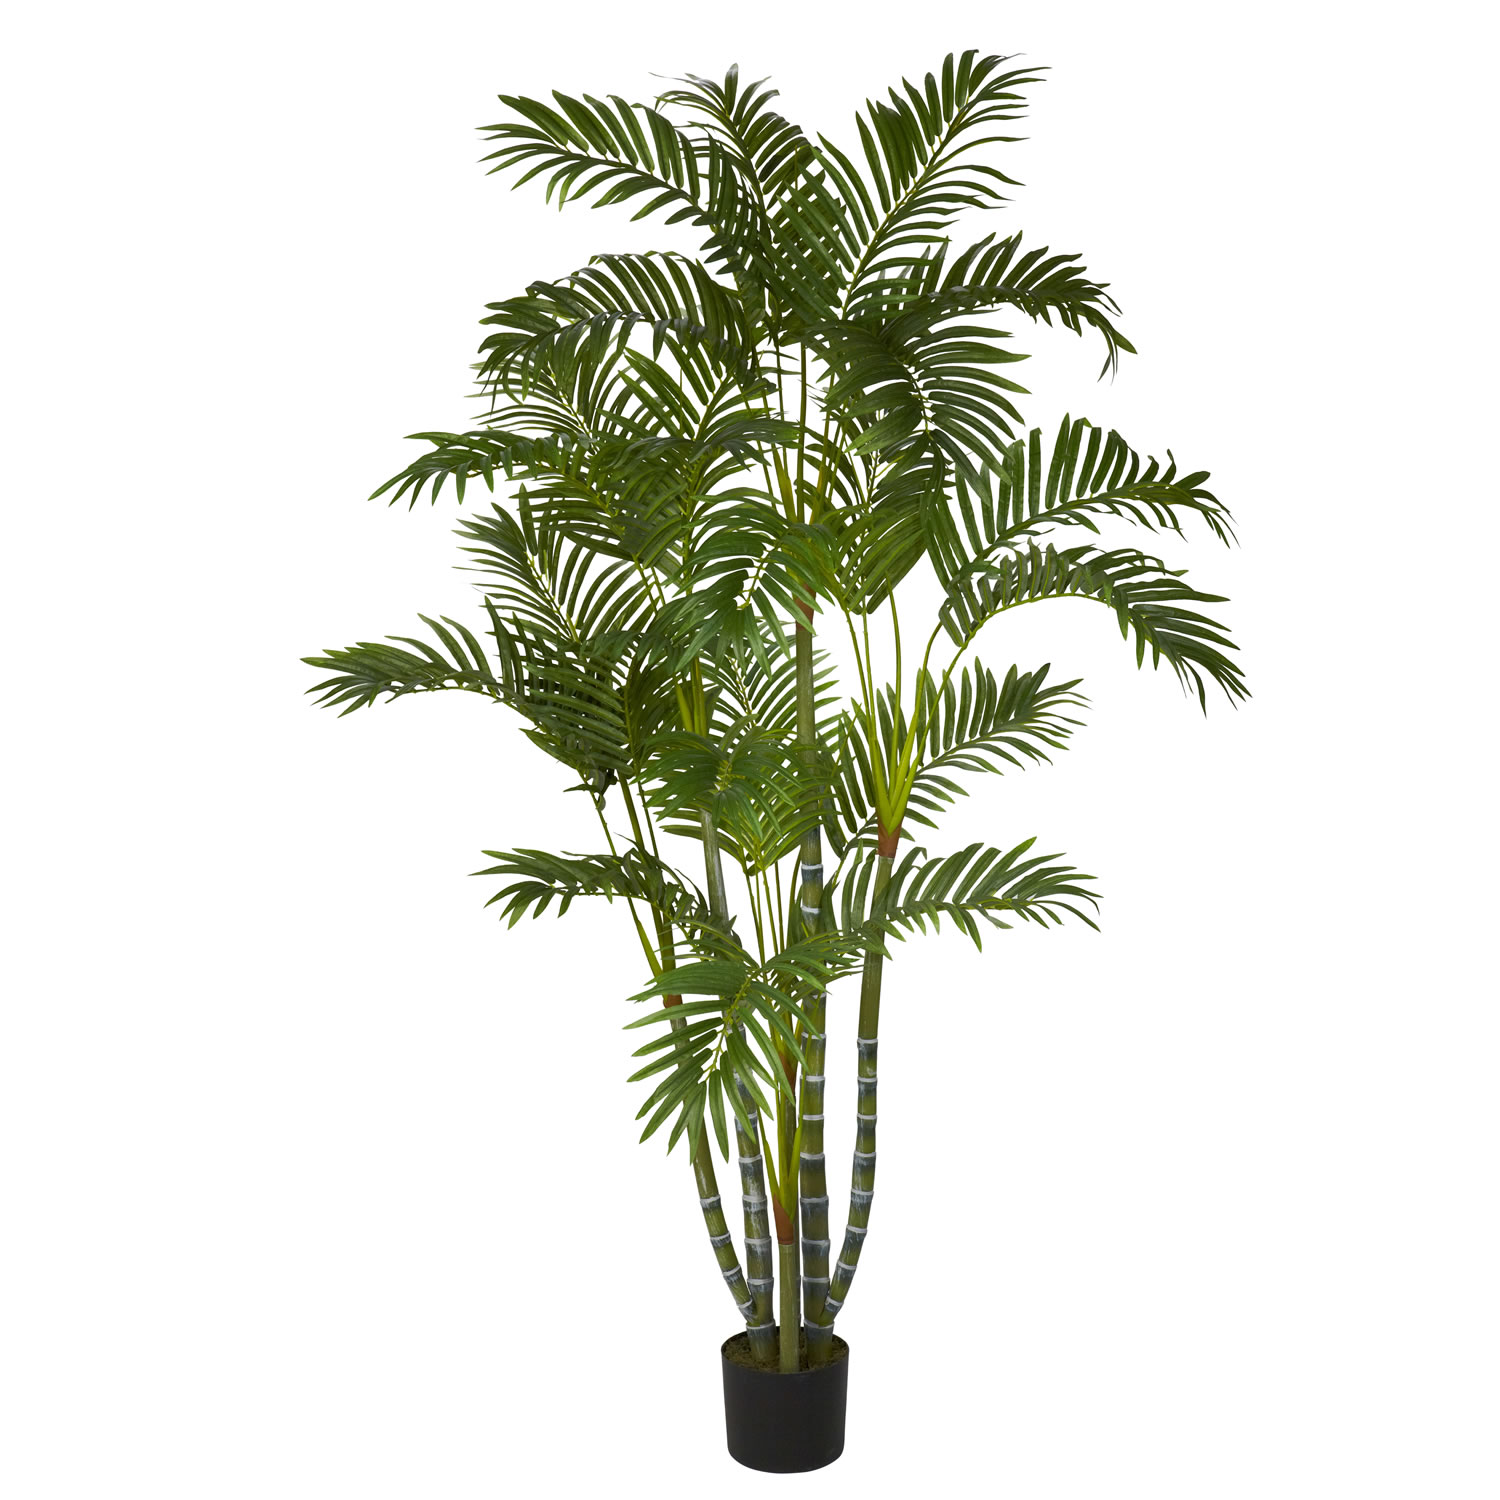 Piquant Closeup Image Foot Biggy Style Areca Palm Potted Areca Palm Tree Leaves Turning Yellow Areca Palm Tree Outdoor Care houzz-03 Areca Palm Tree